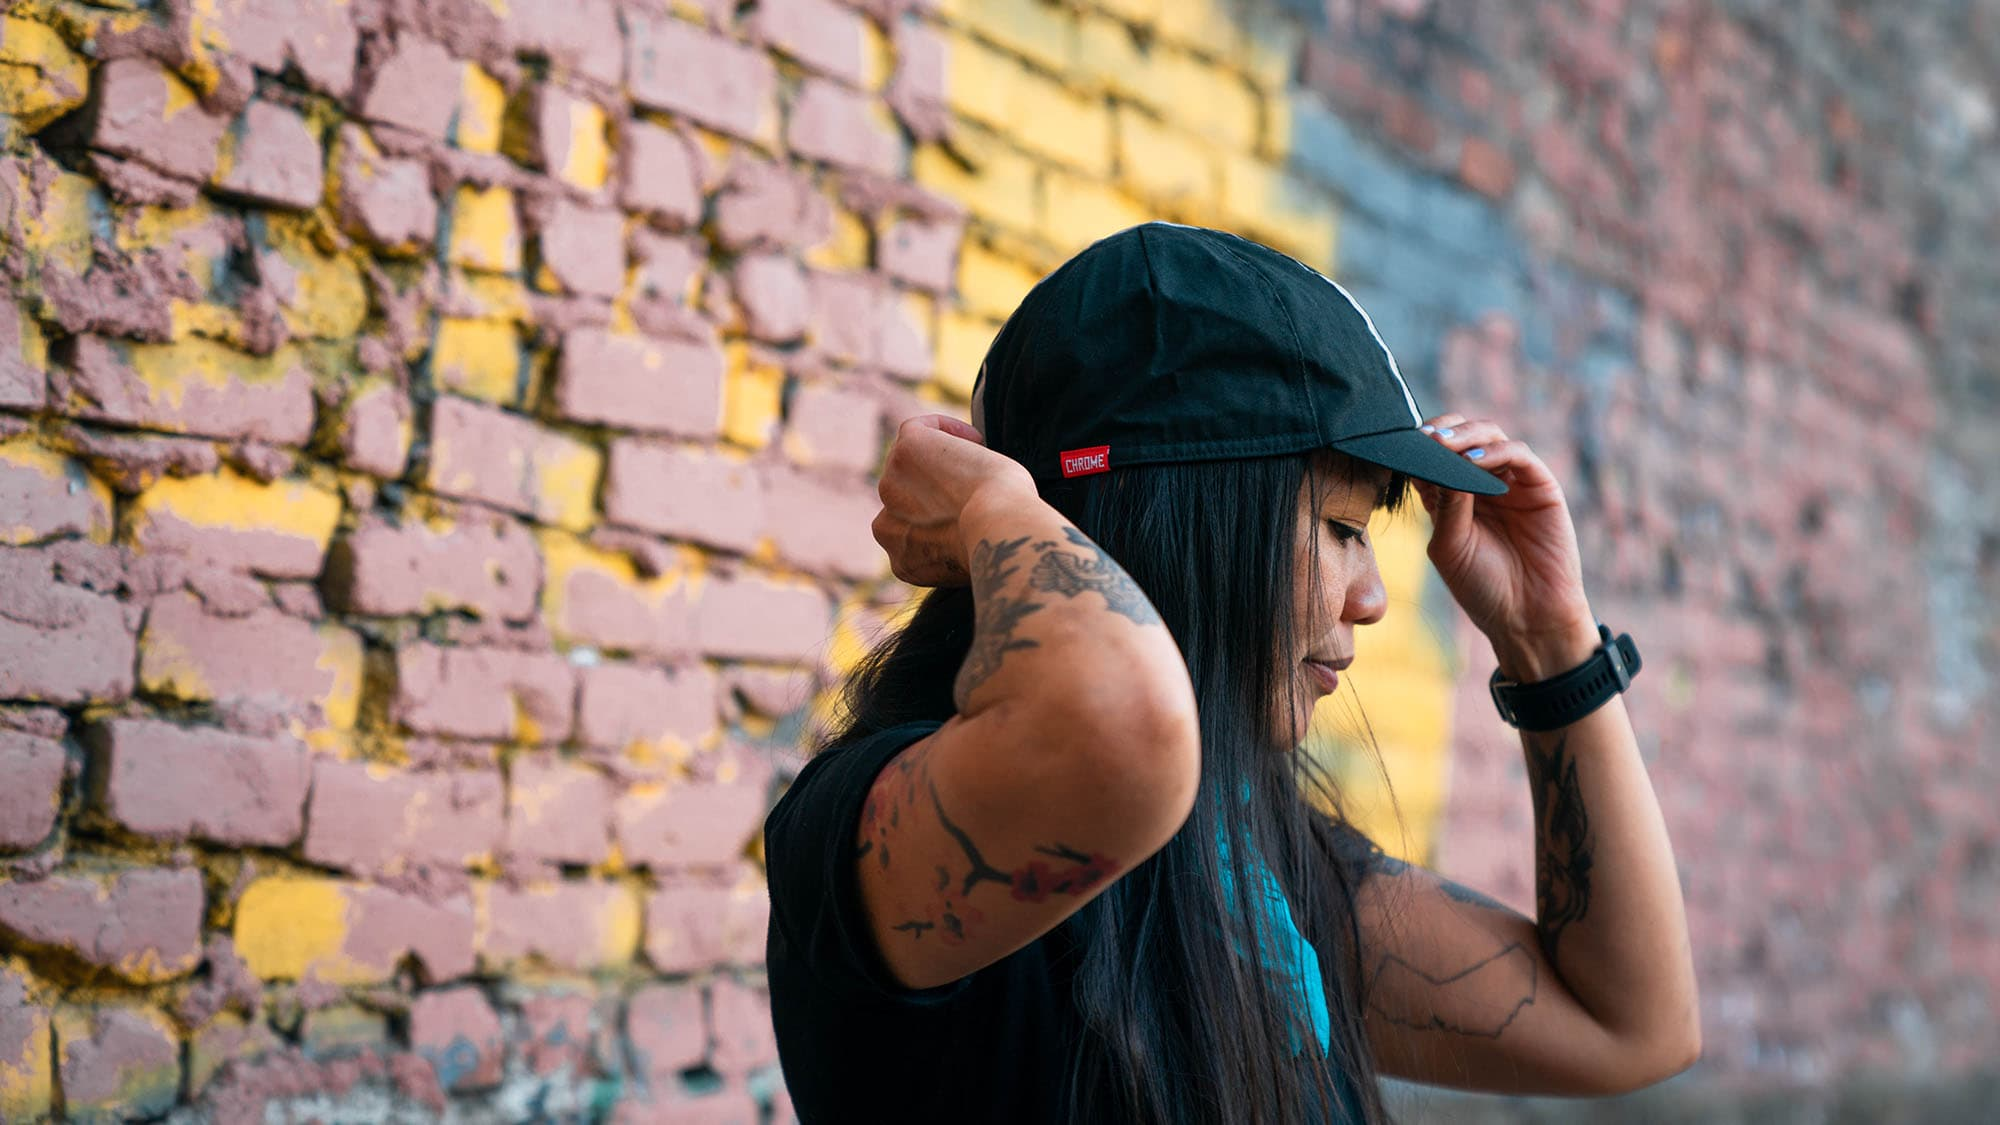 unisex cycling cap on a woman